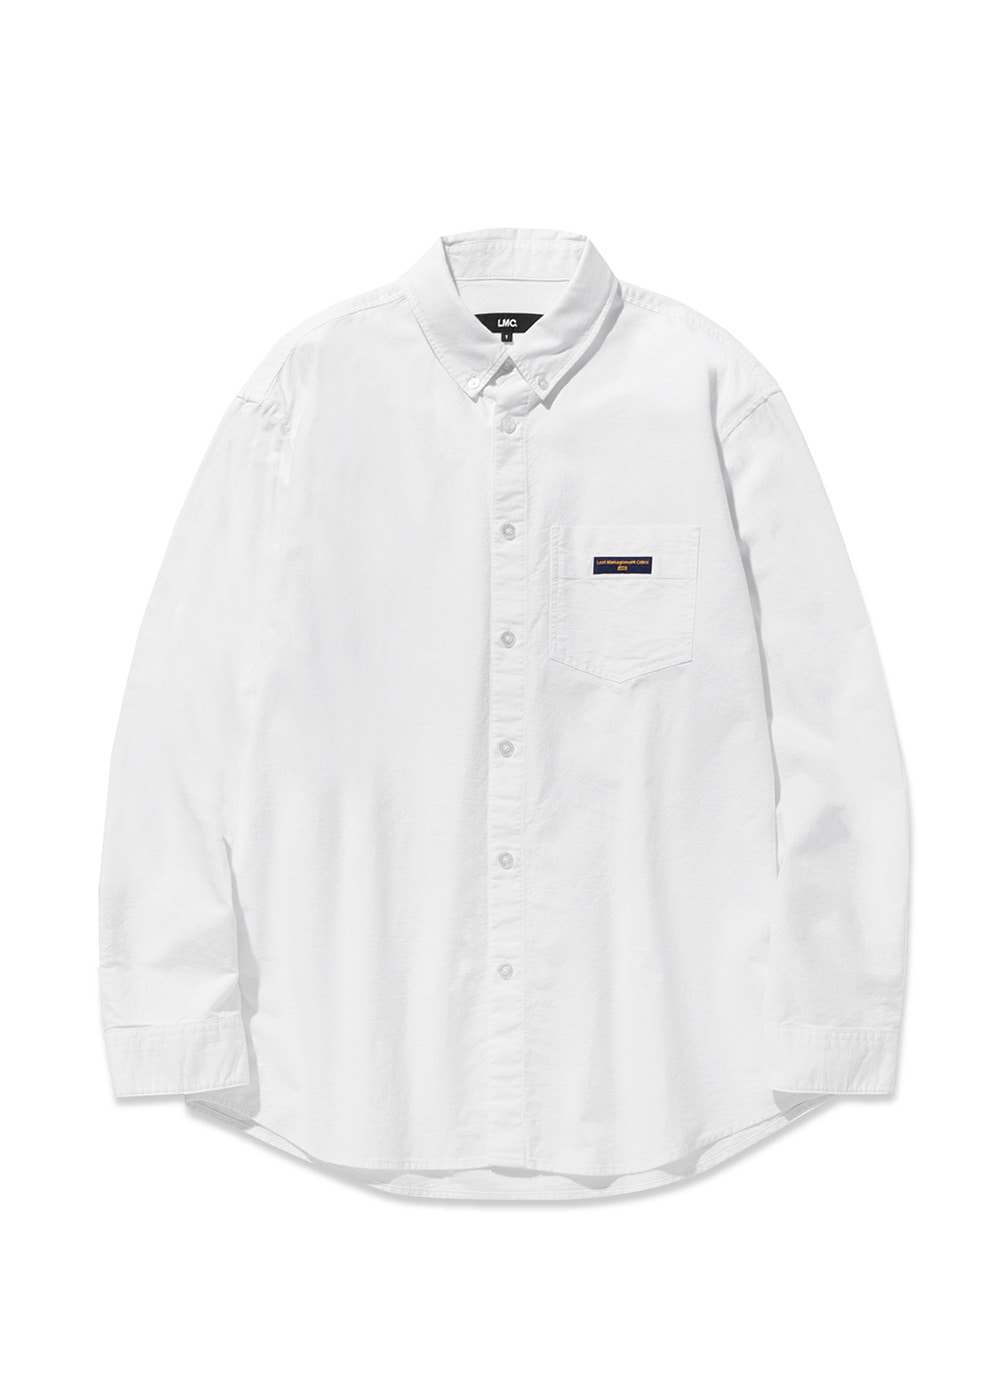 LMC BASIC SHIRT white